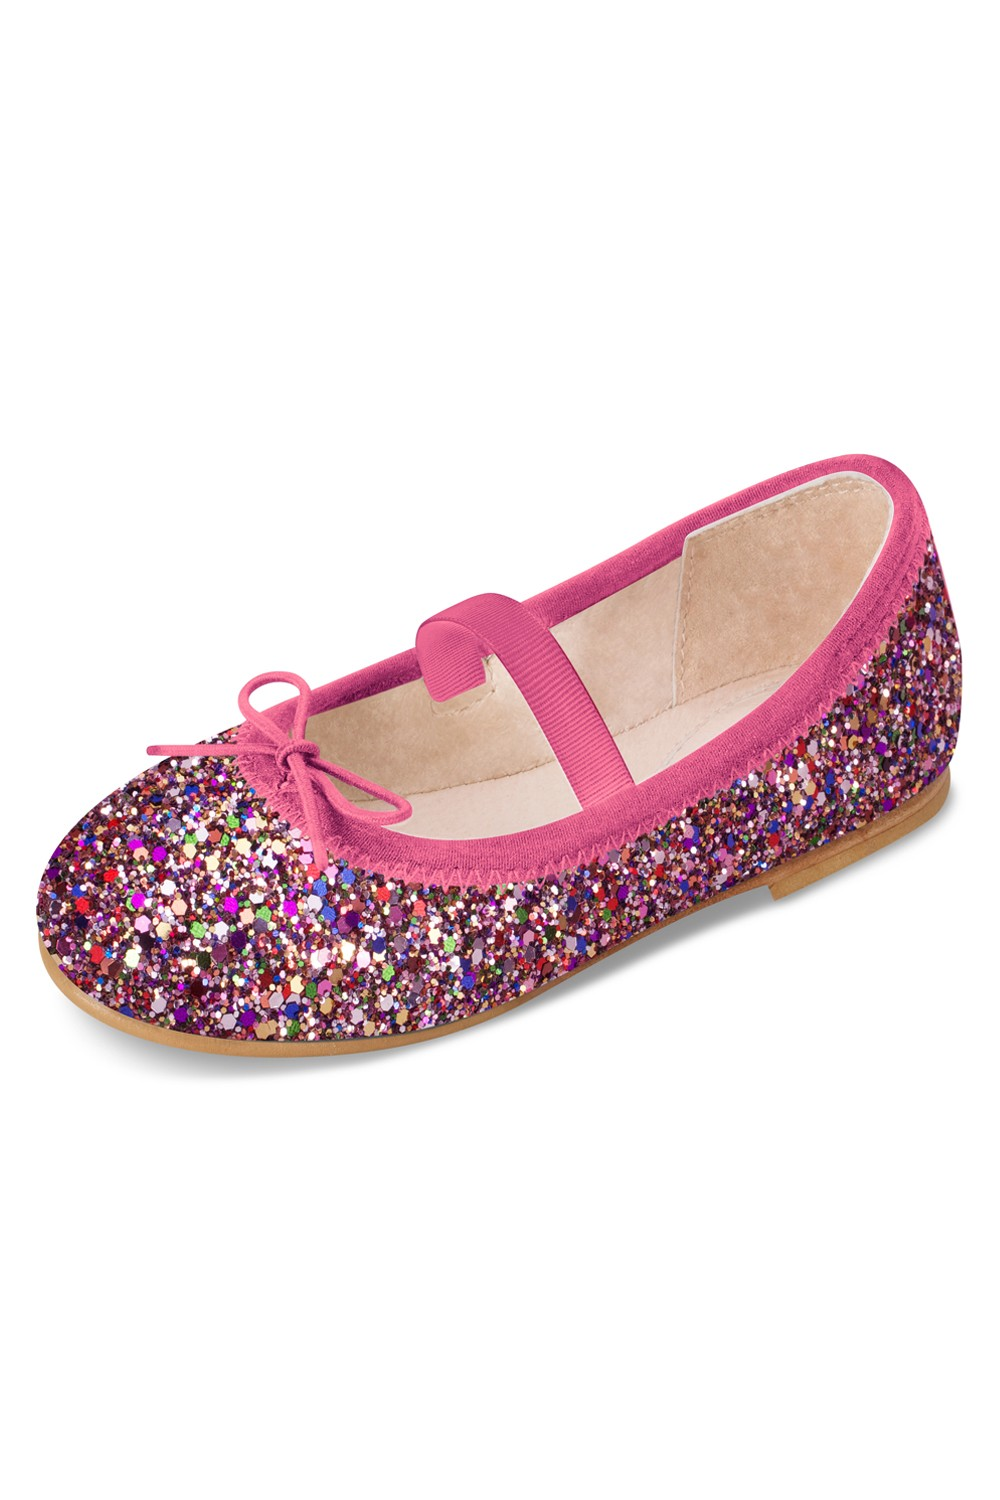 Sparkle Toddlers Fashion Shoes